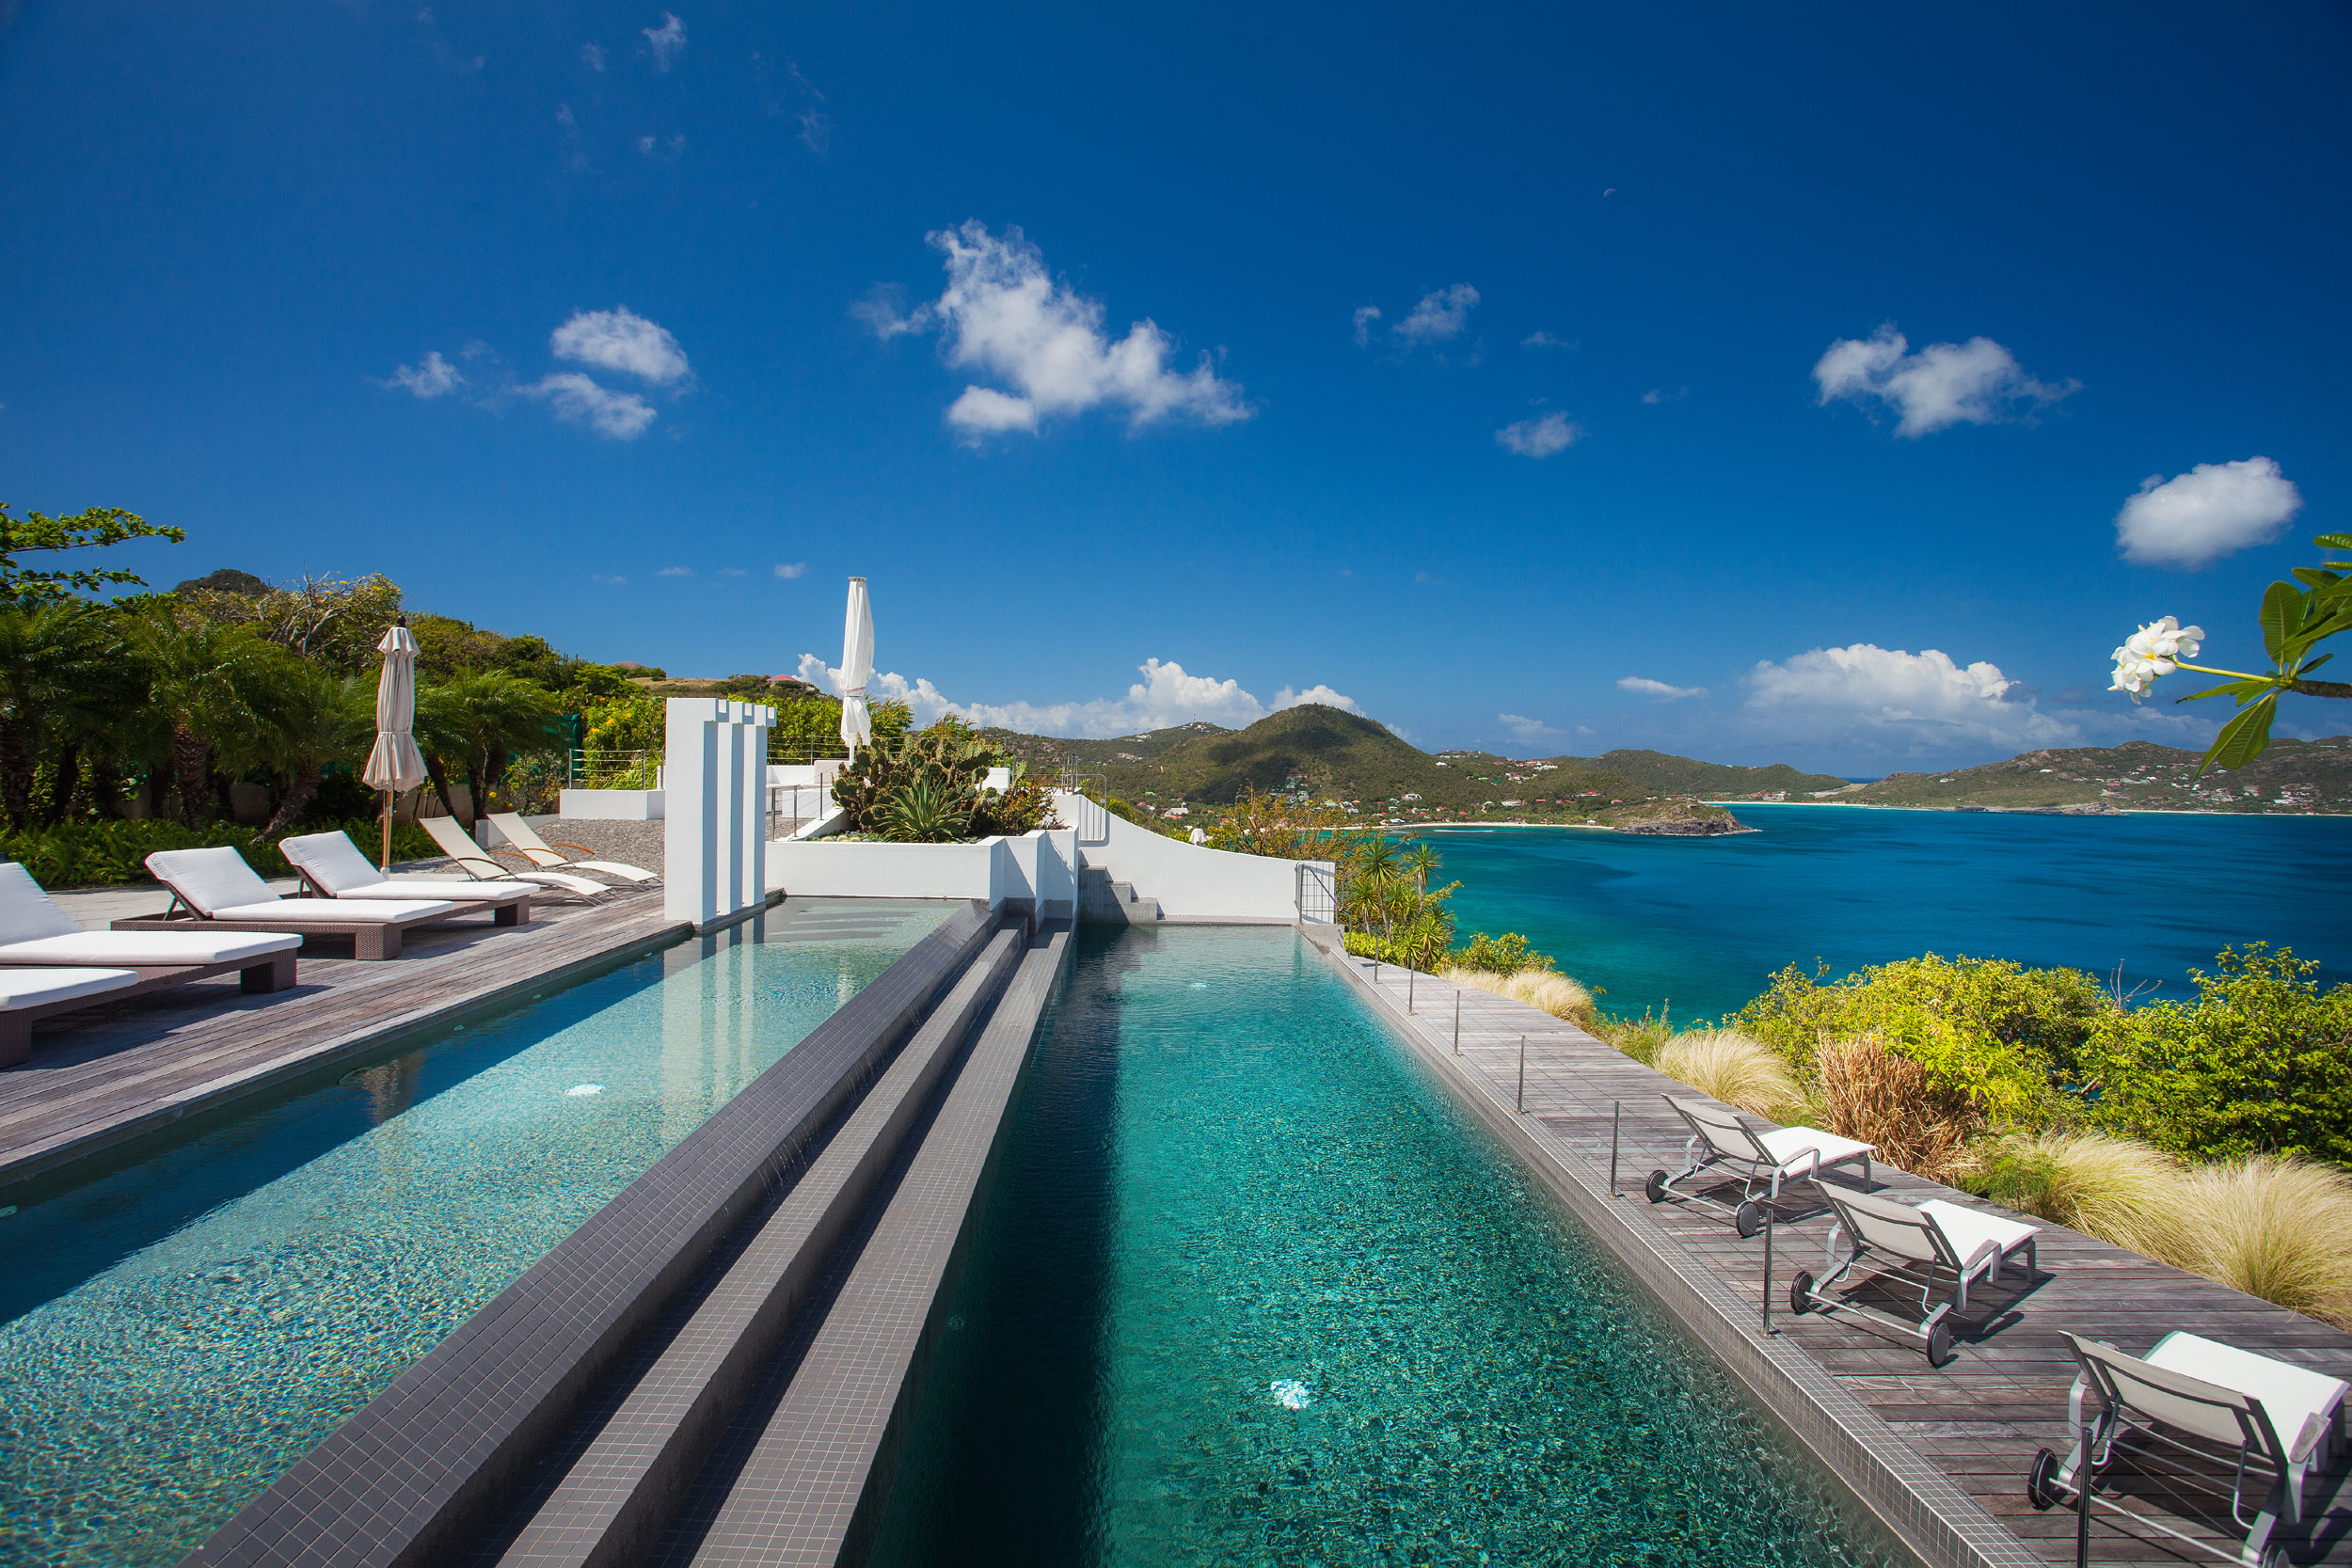 Villa DIC in Pointe Milou on the exclusive island of St. Barths in the French West Indies is a contemporary marvel at one with its lush, tropical environment.